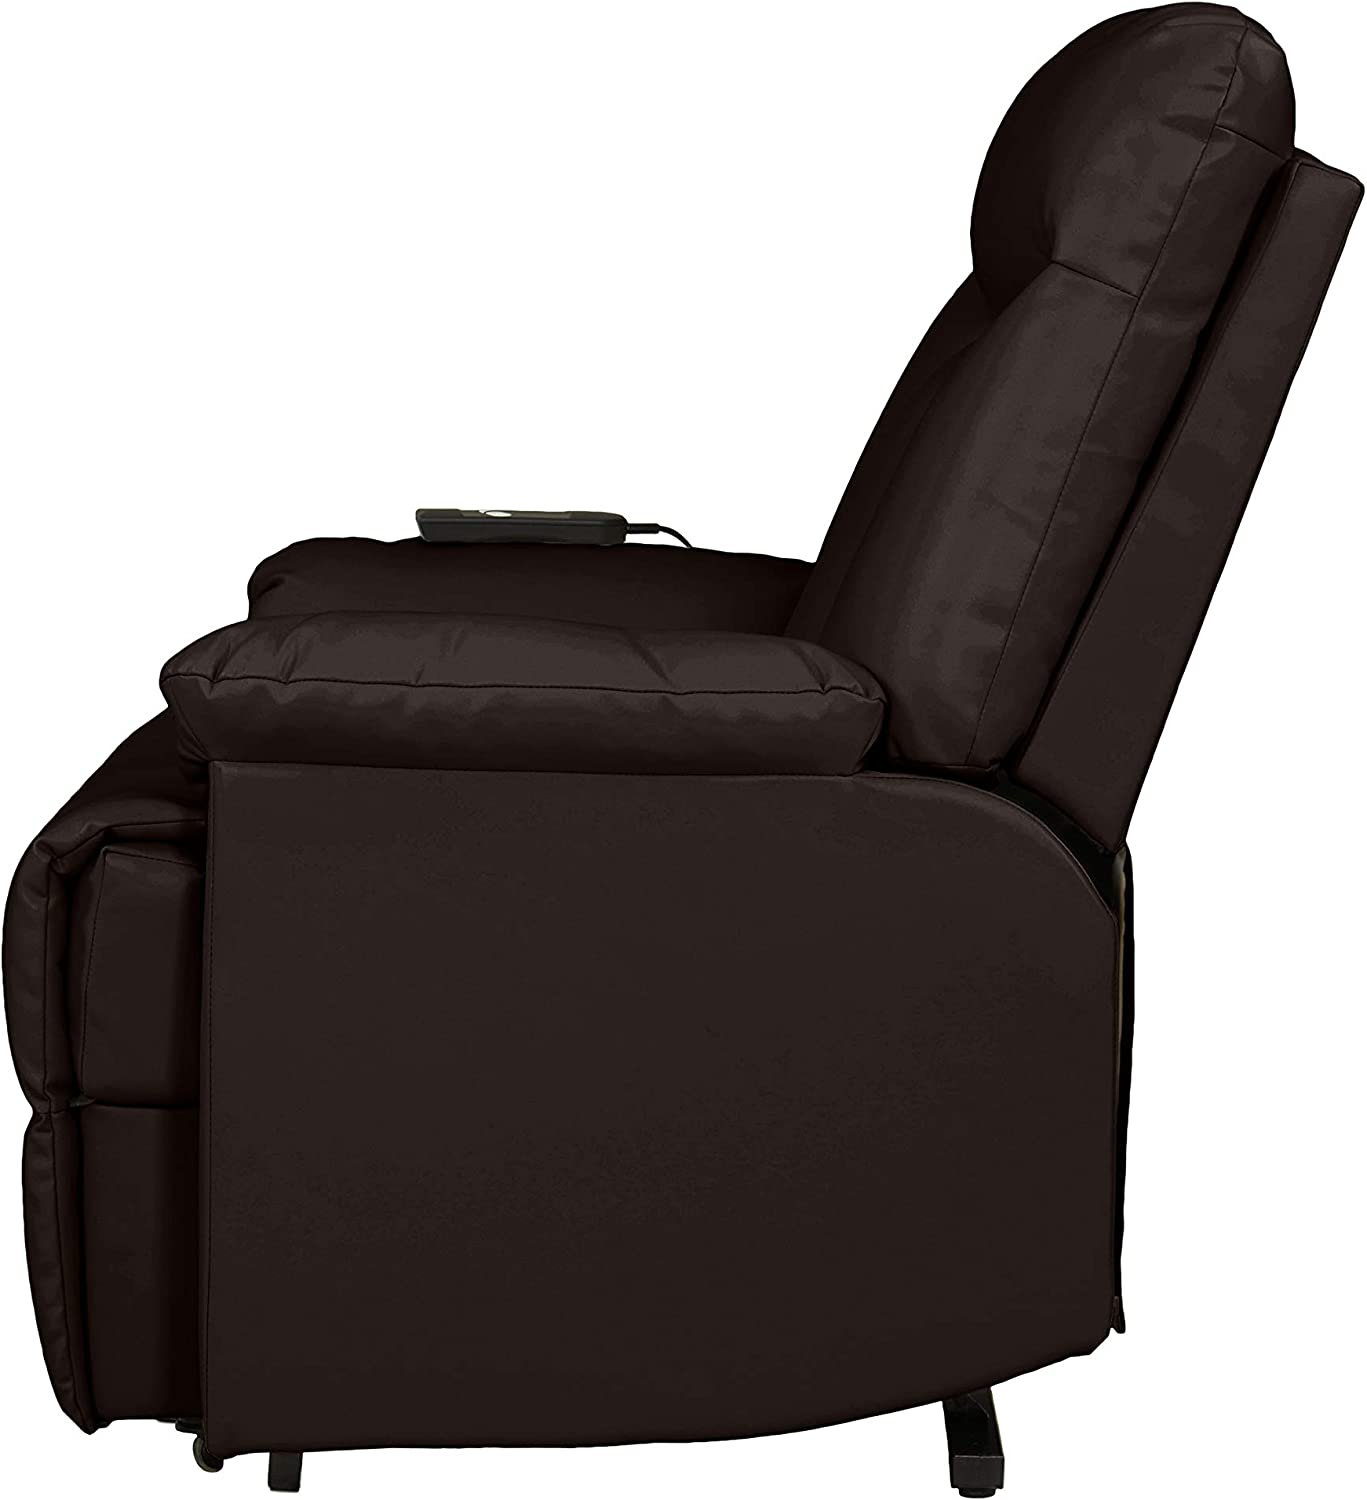 Wall Hugging Stand up chair